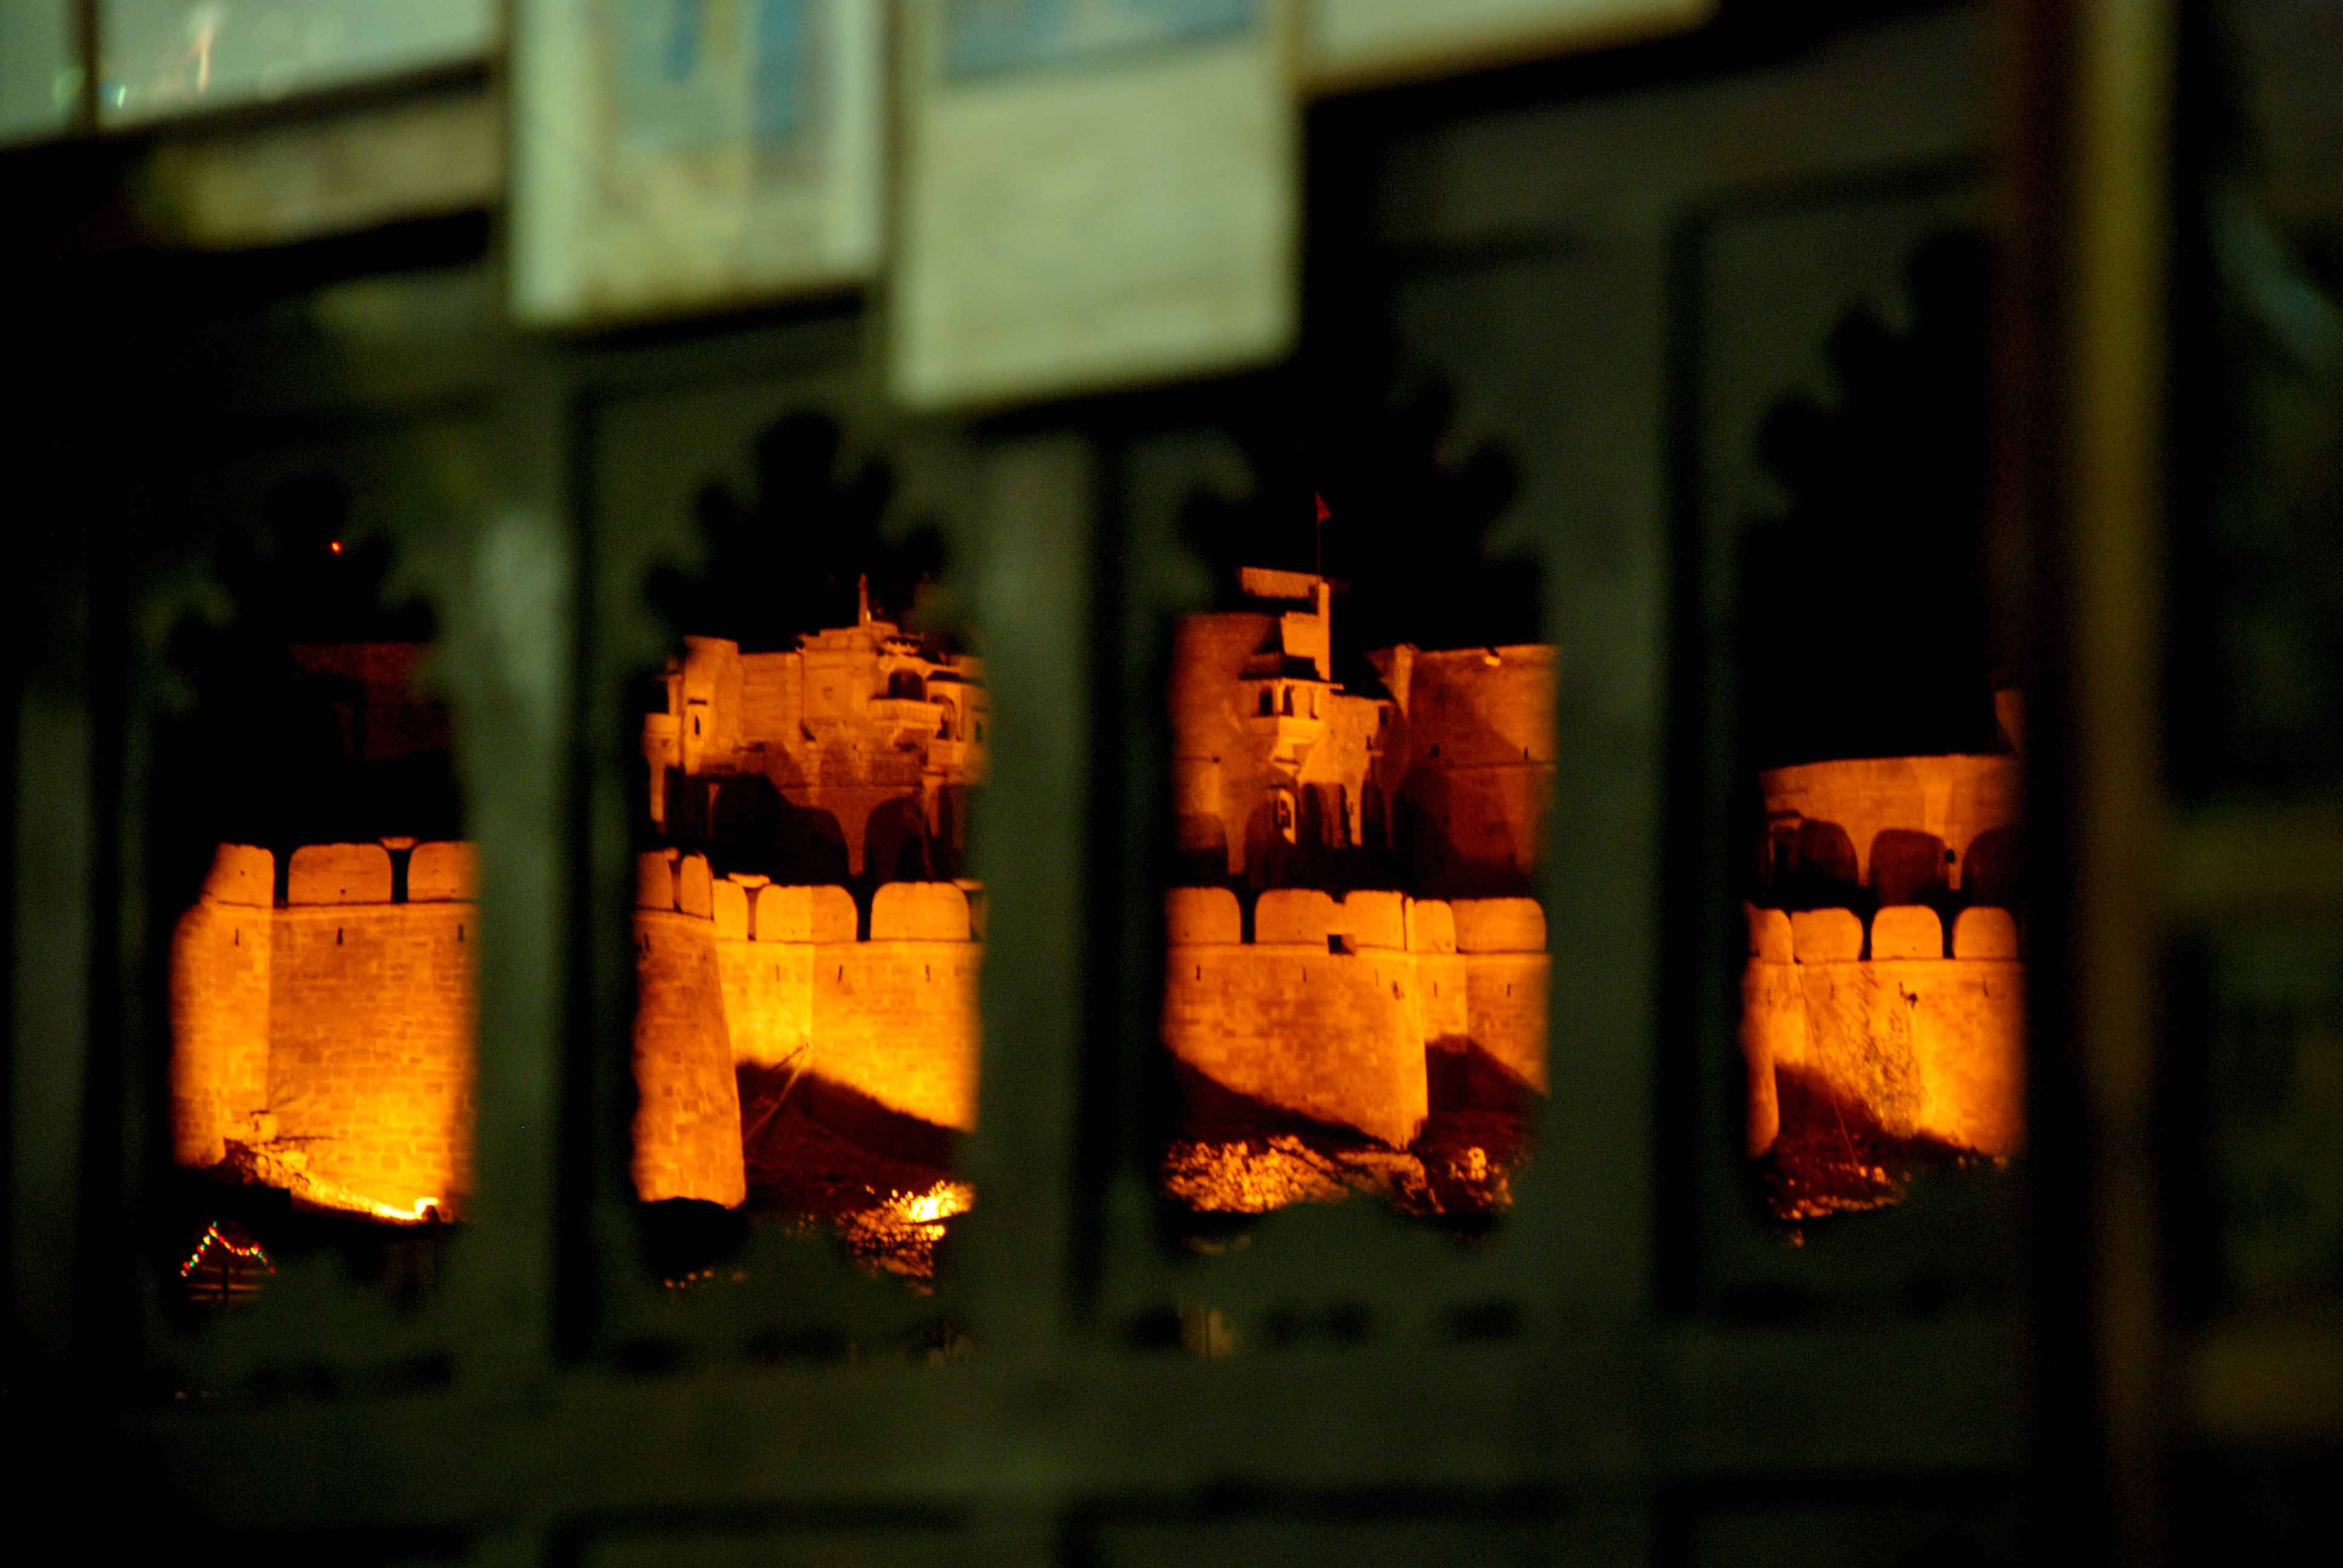 The illuminated fort viewed through the window panels of a restaurant.